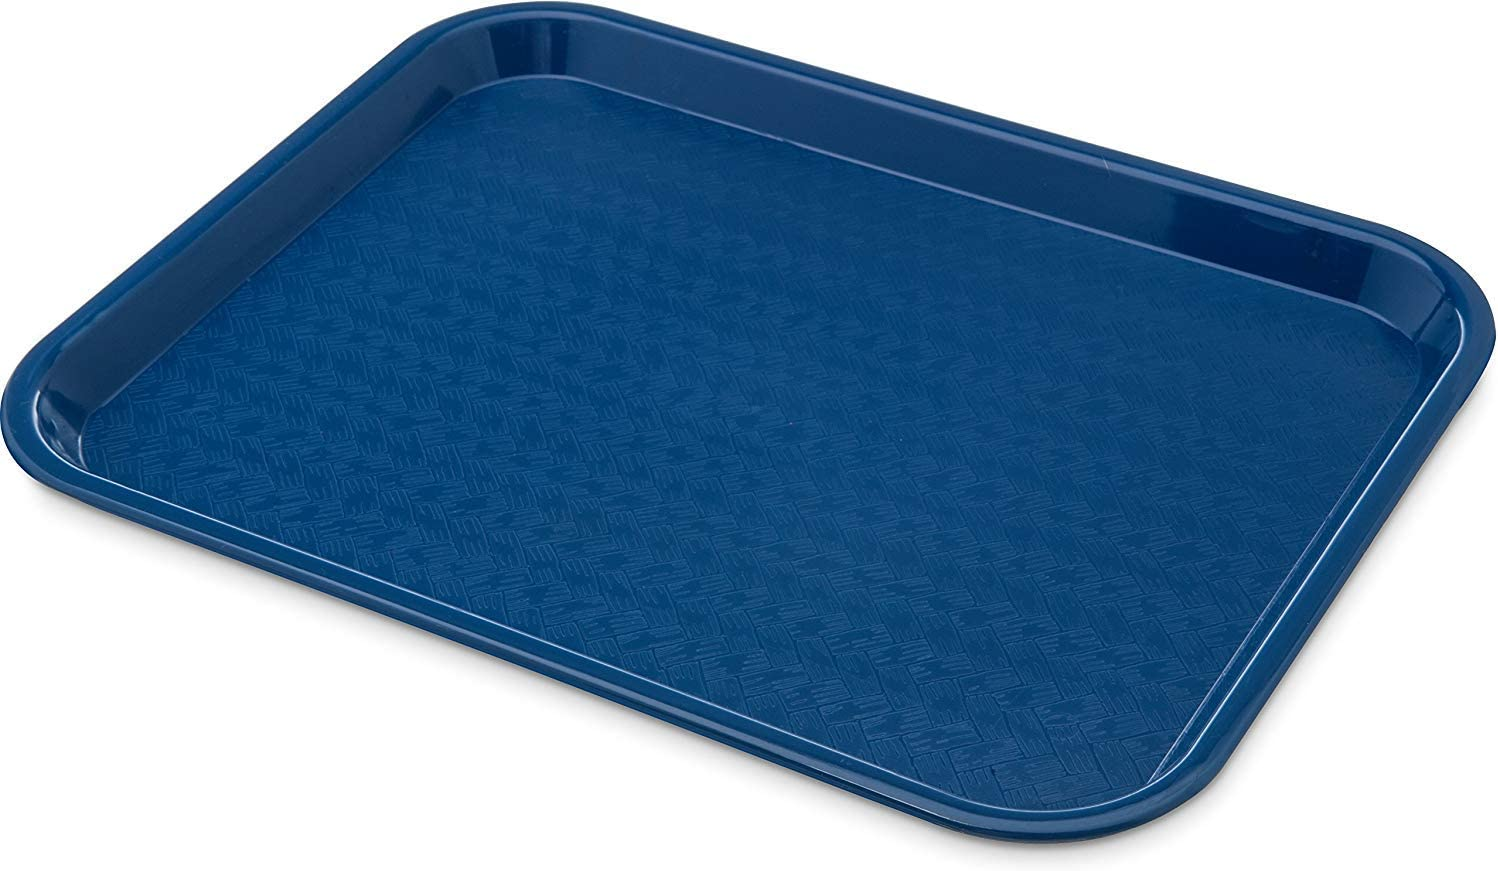 Carlisle CT1014-8114 Caf? Standard Cafeteria/Fast Food Tray 10 x 14 Blue (Pack of 6) [並行輸入品]